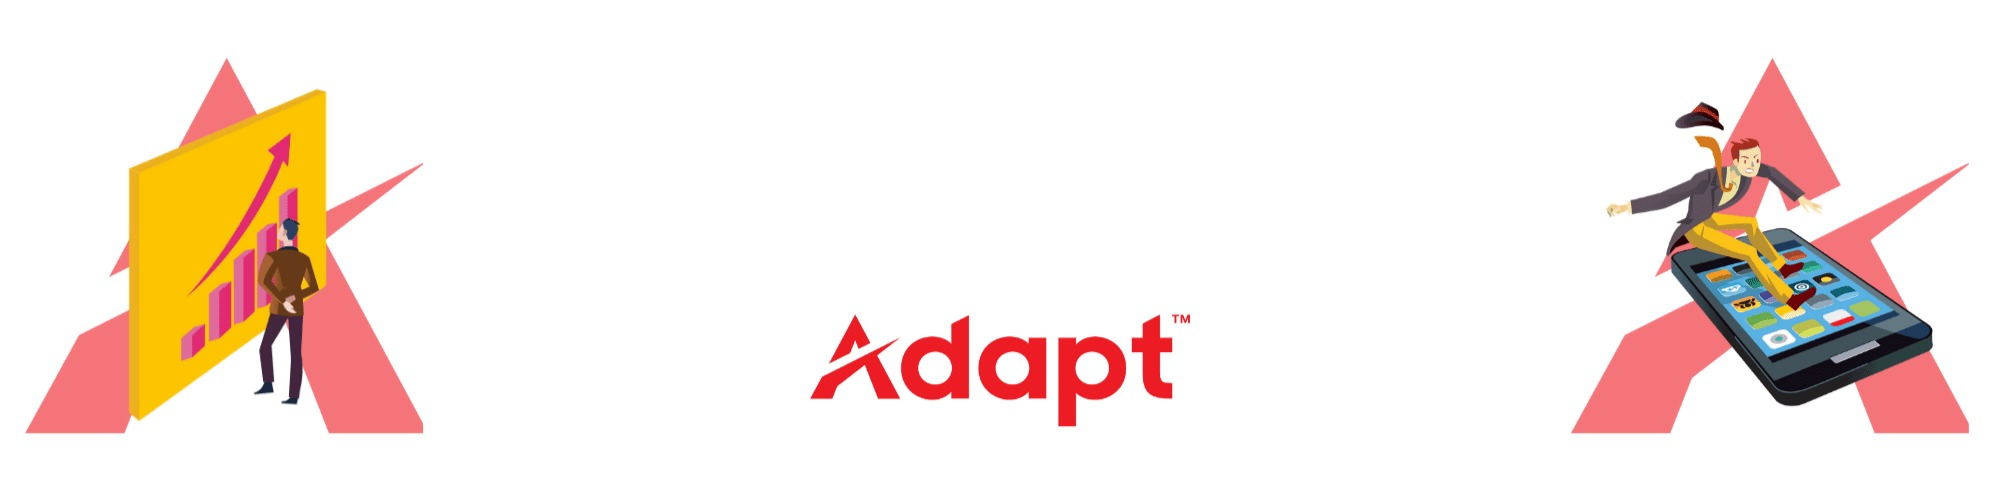 Best Adapt Tips for Recruiters